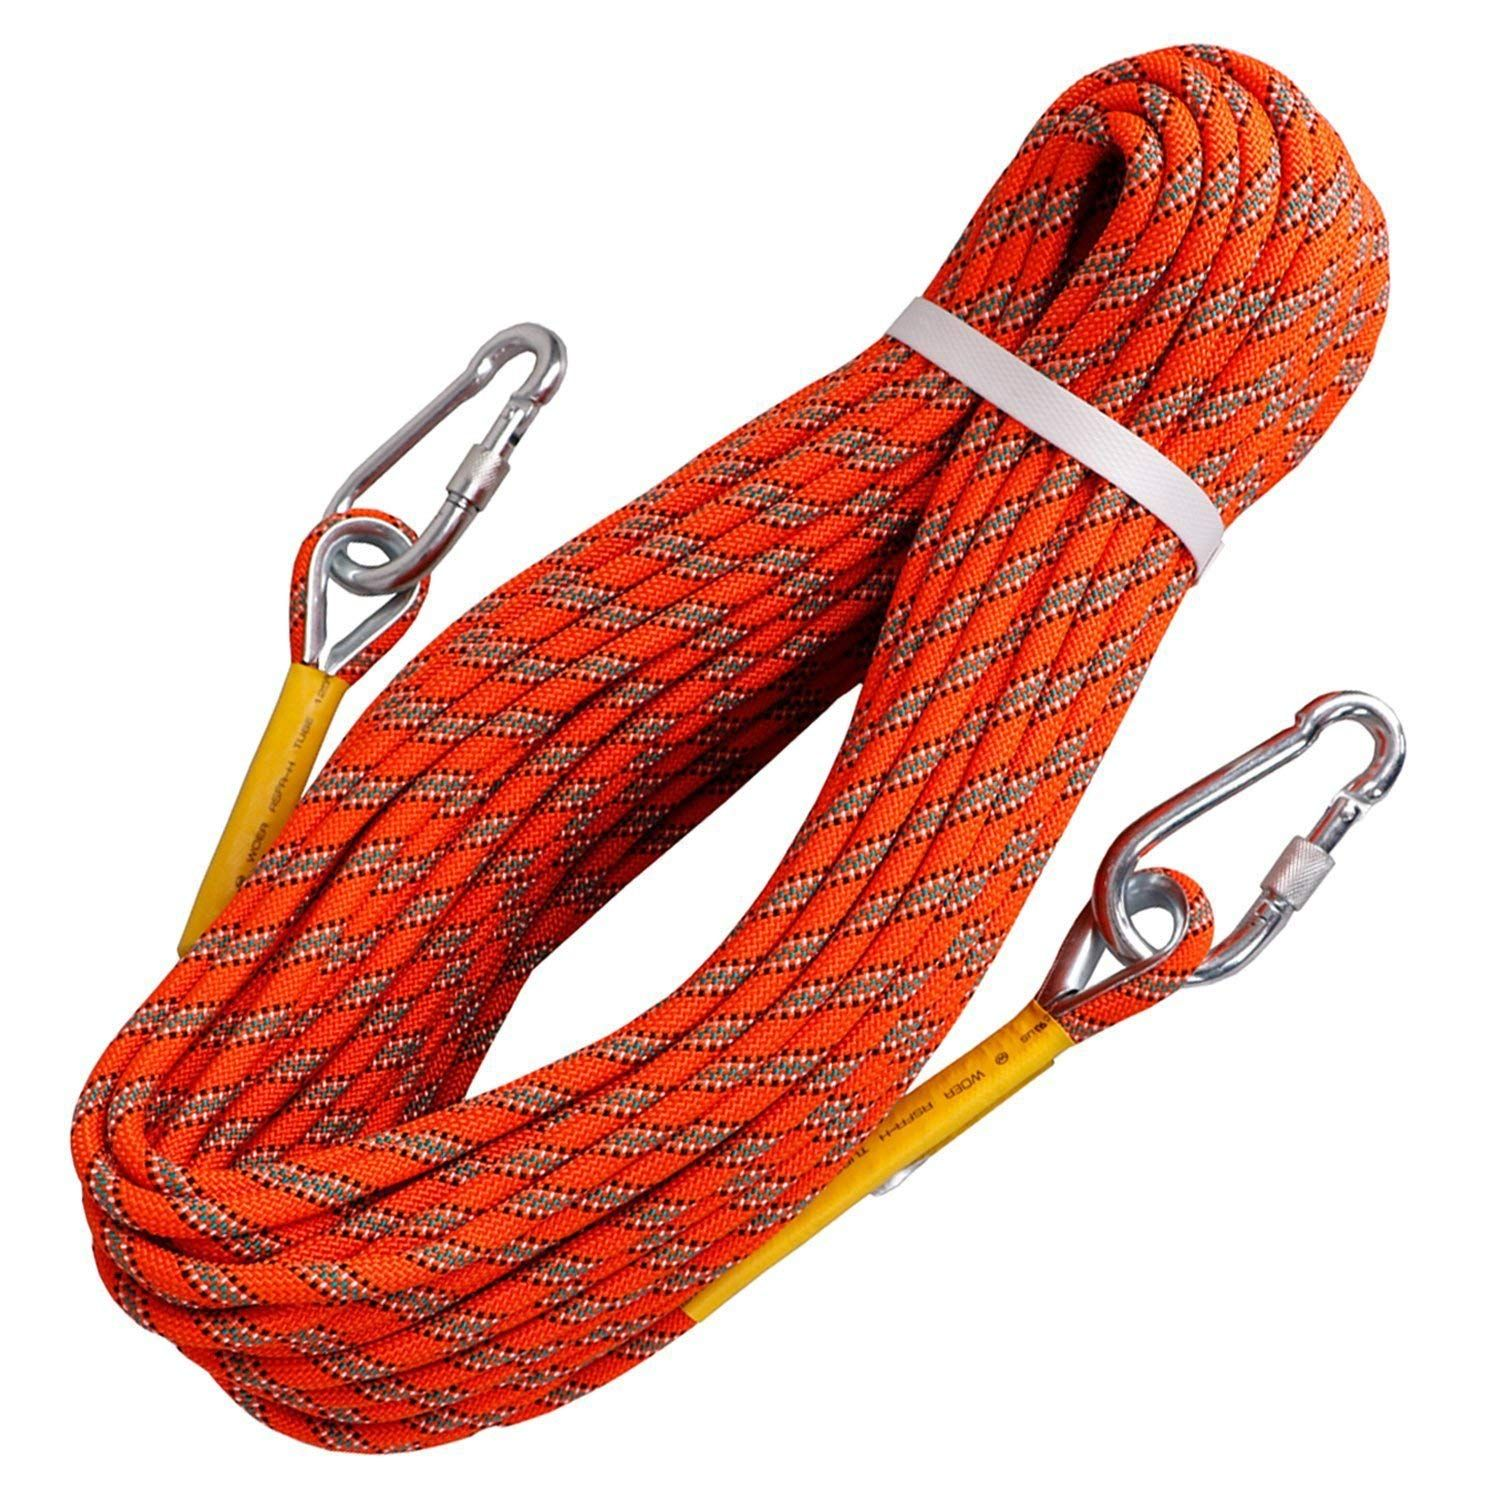 Tresbro Outdoor Rock Climbing Rope Stacic Fire Rope Escape Safety Survival Rope 10m 32ft 20m 64ft 30m 96ft 5 Rock Climbing Rope Climbing Rope Rock Climbing